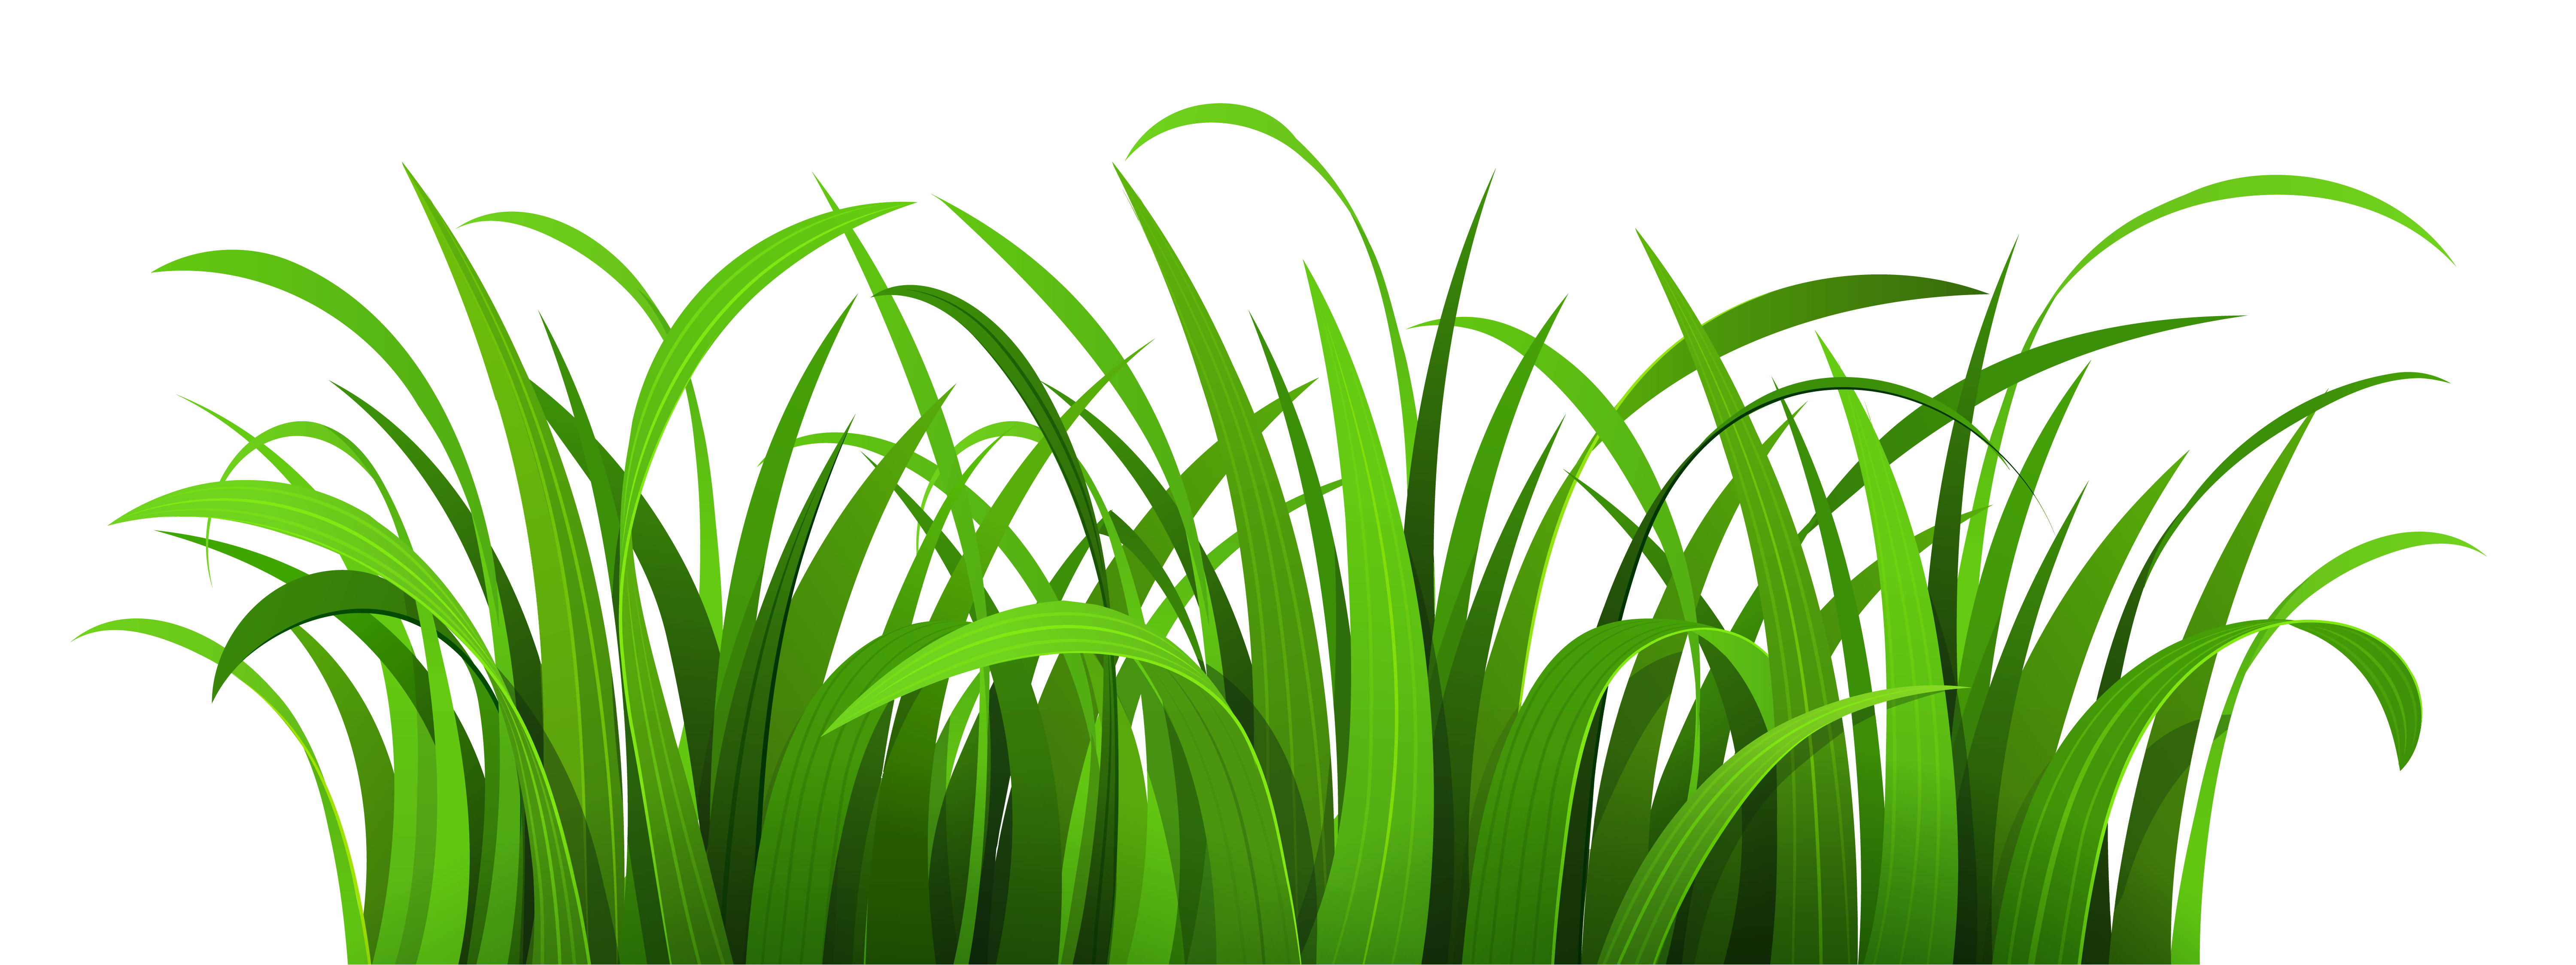 Gras clipart kostenlos clip royalty free library Gras clipart kostenlos - ClipartFest clip royalty free library